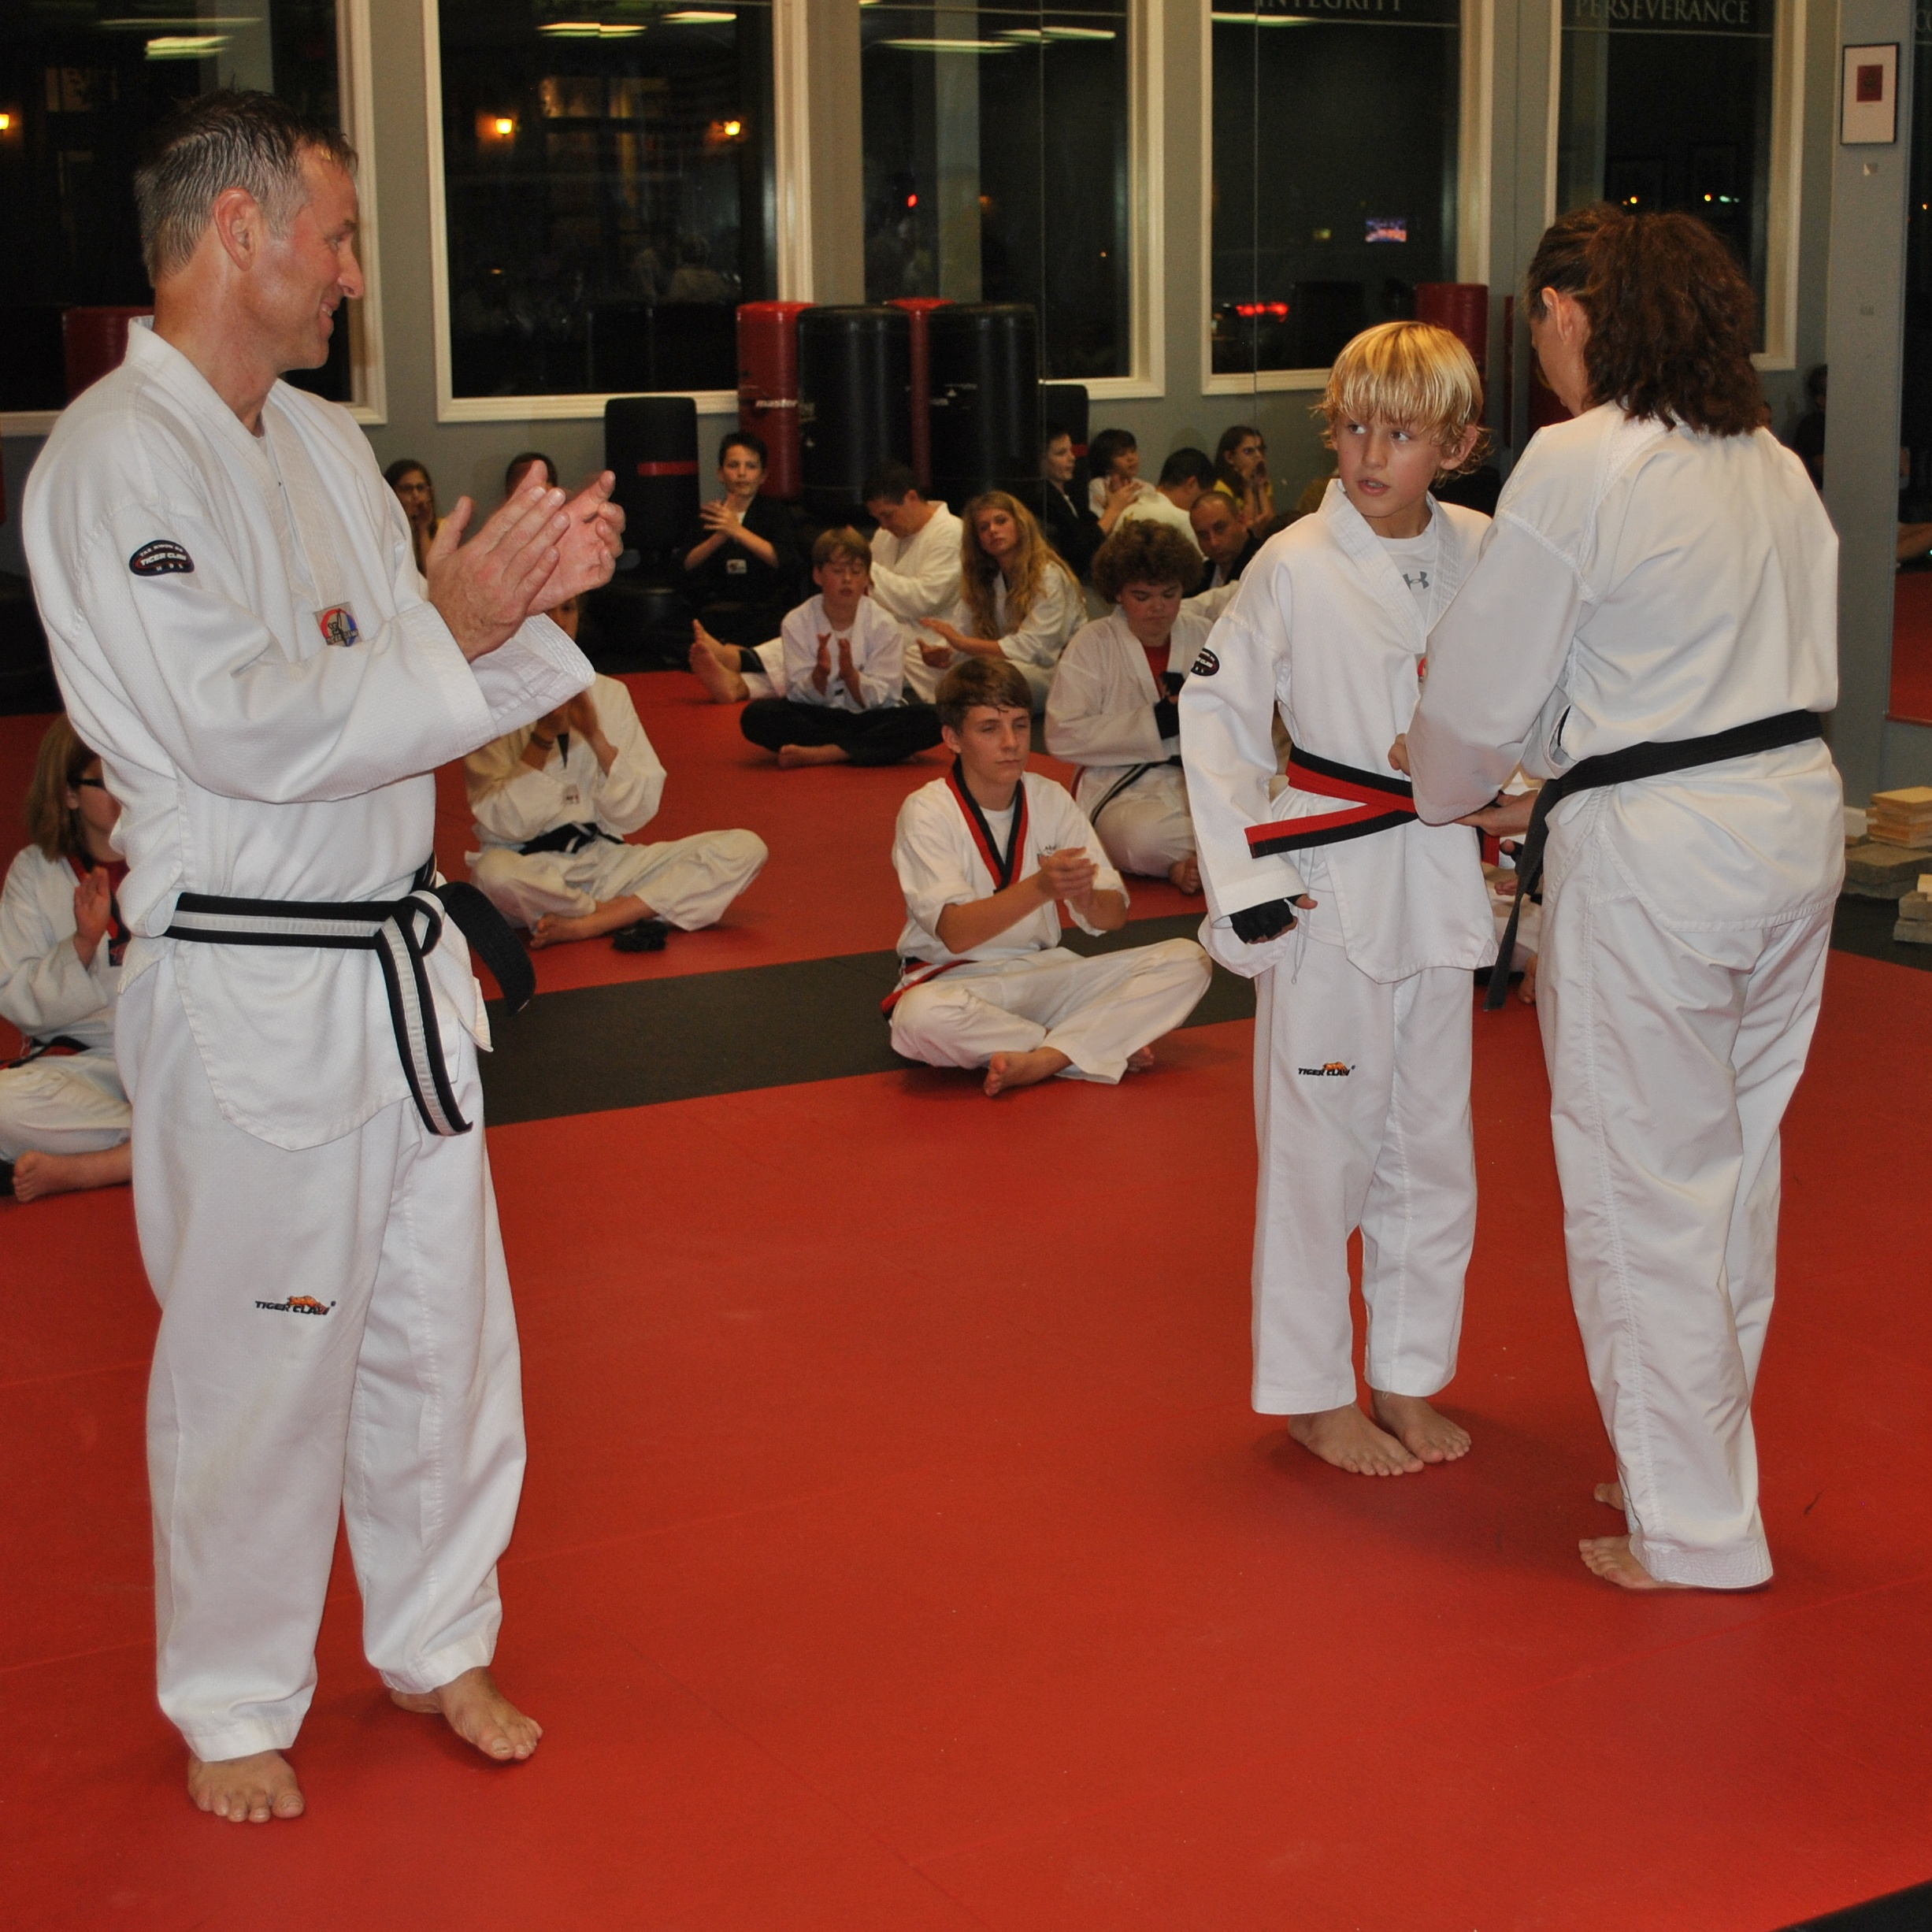 About Us | Champion Taekwondo | For Mill, SC | Martial Arts for All